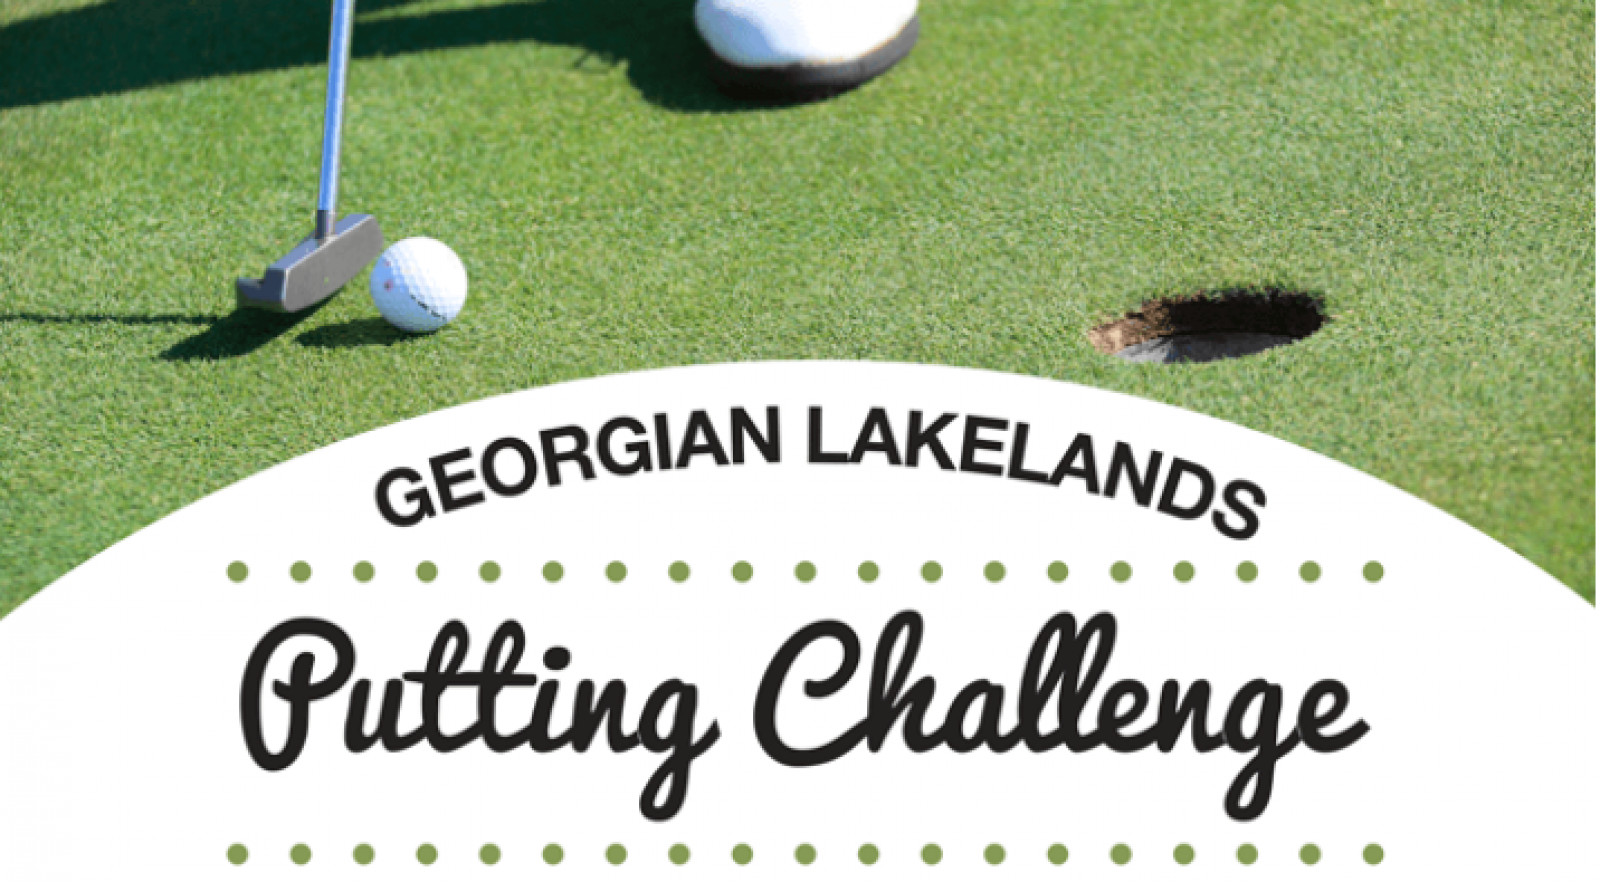 Georgian Lakelands Putting Challenge